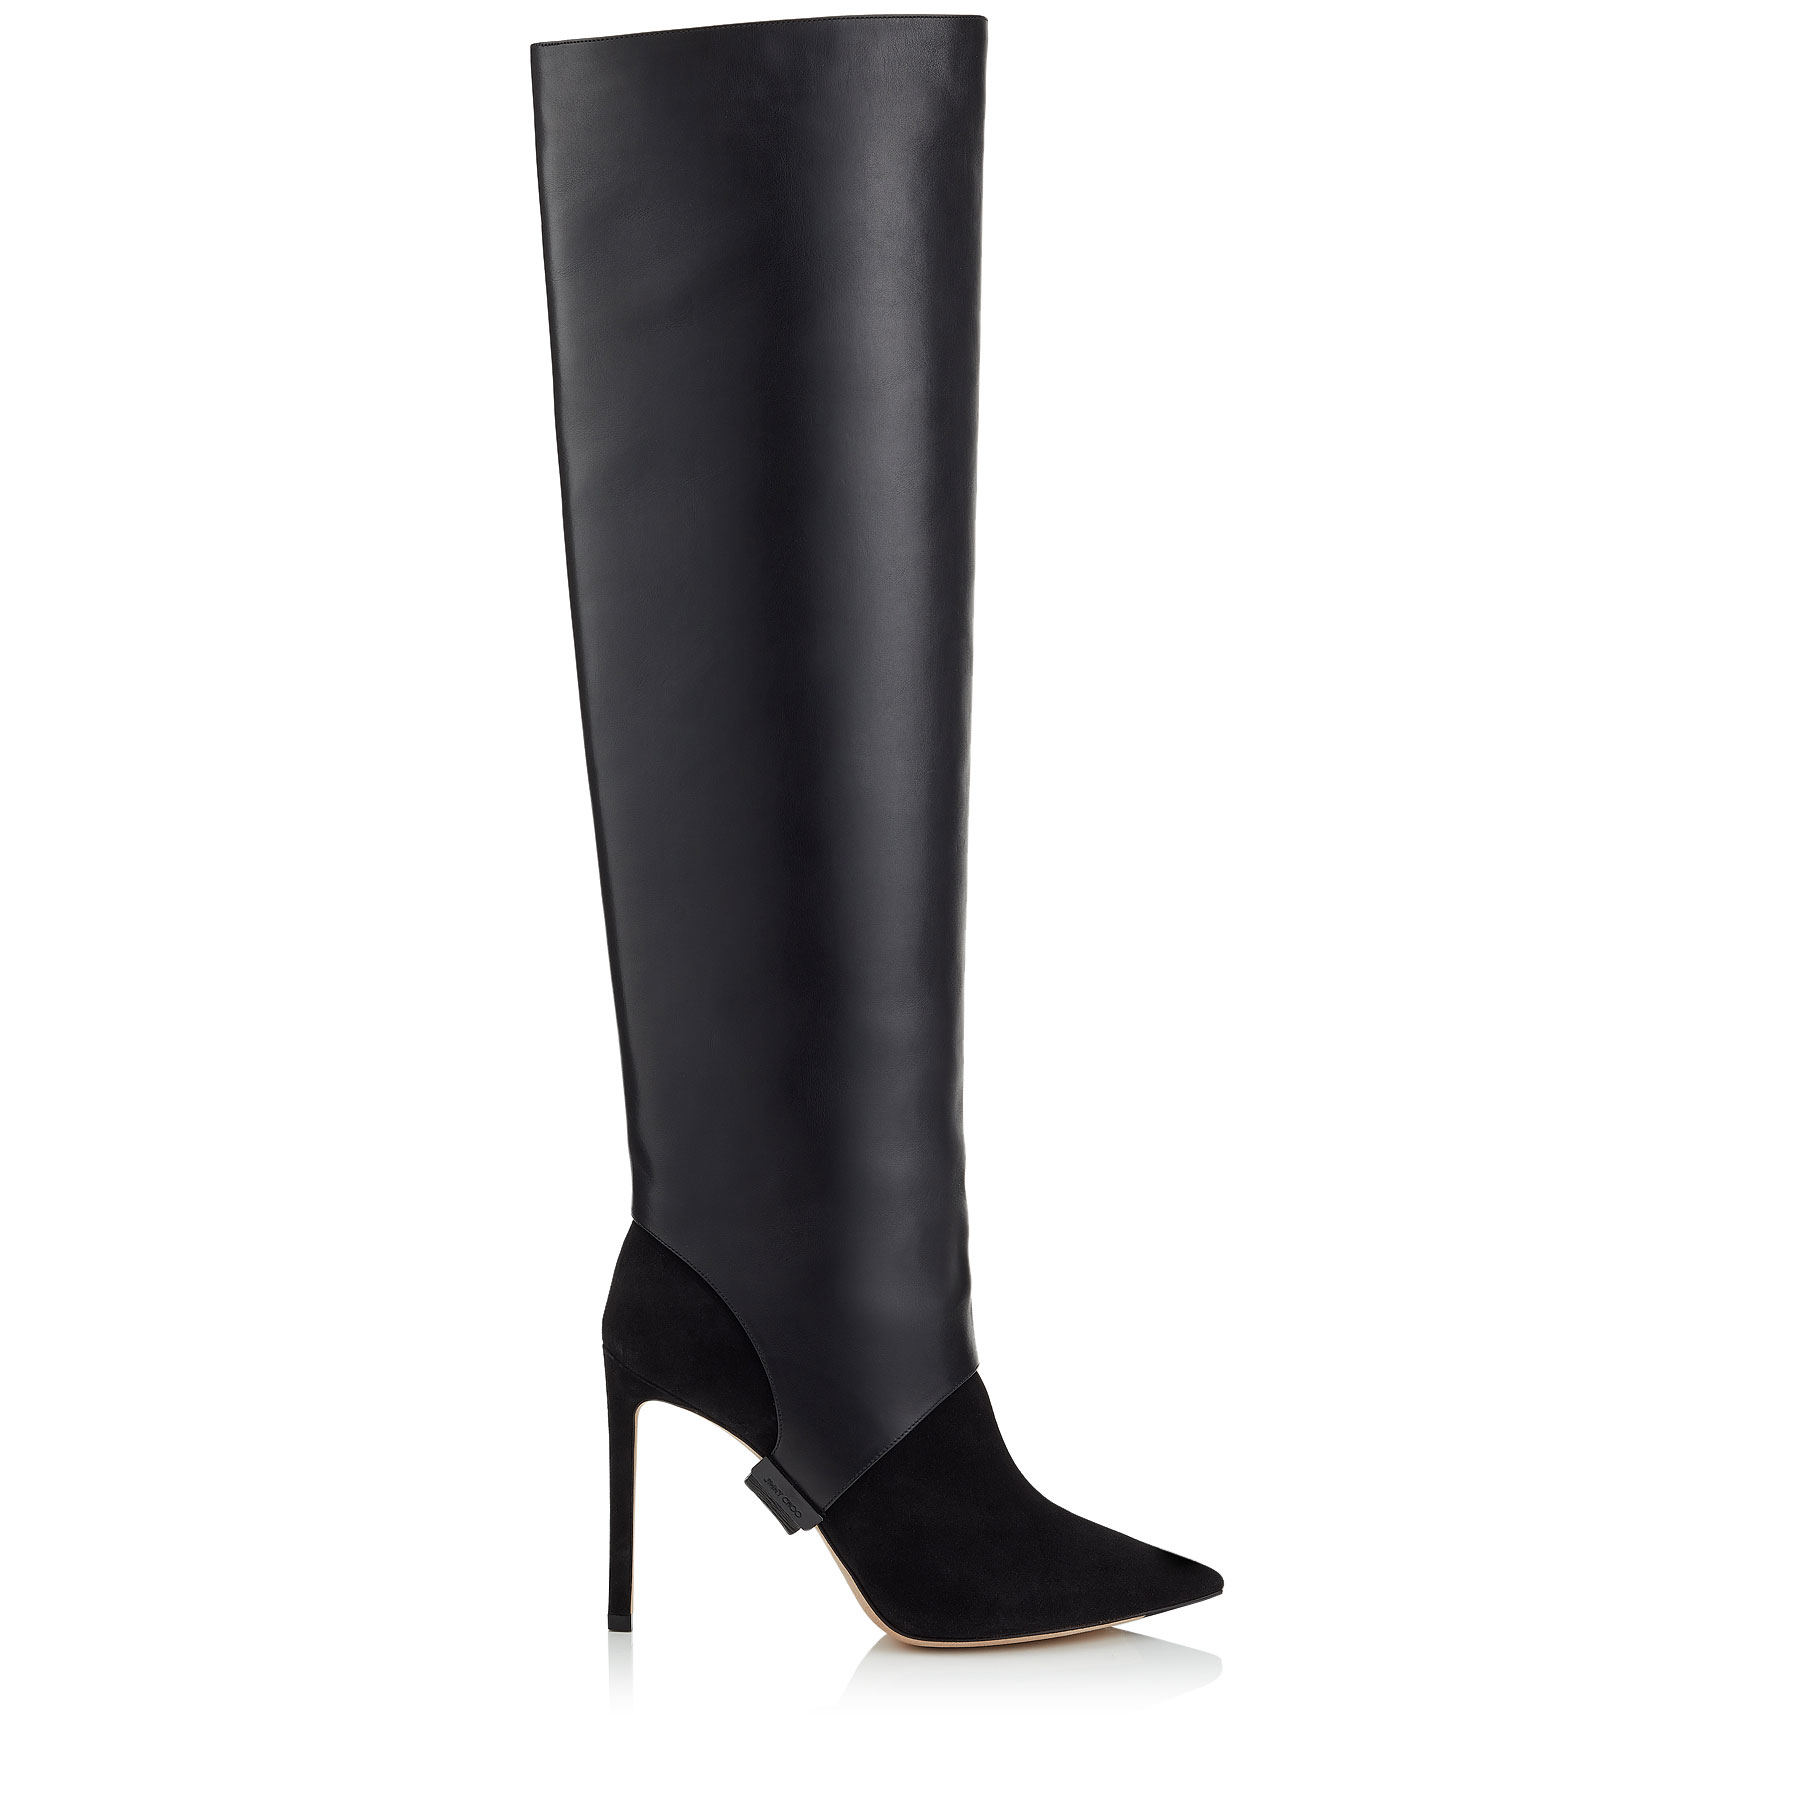 HURLEY 100 Black Suede and Calf Leather Two-Piece Knee-High Booties by Jimmy Choo